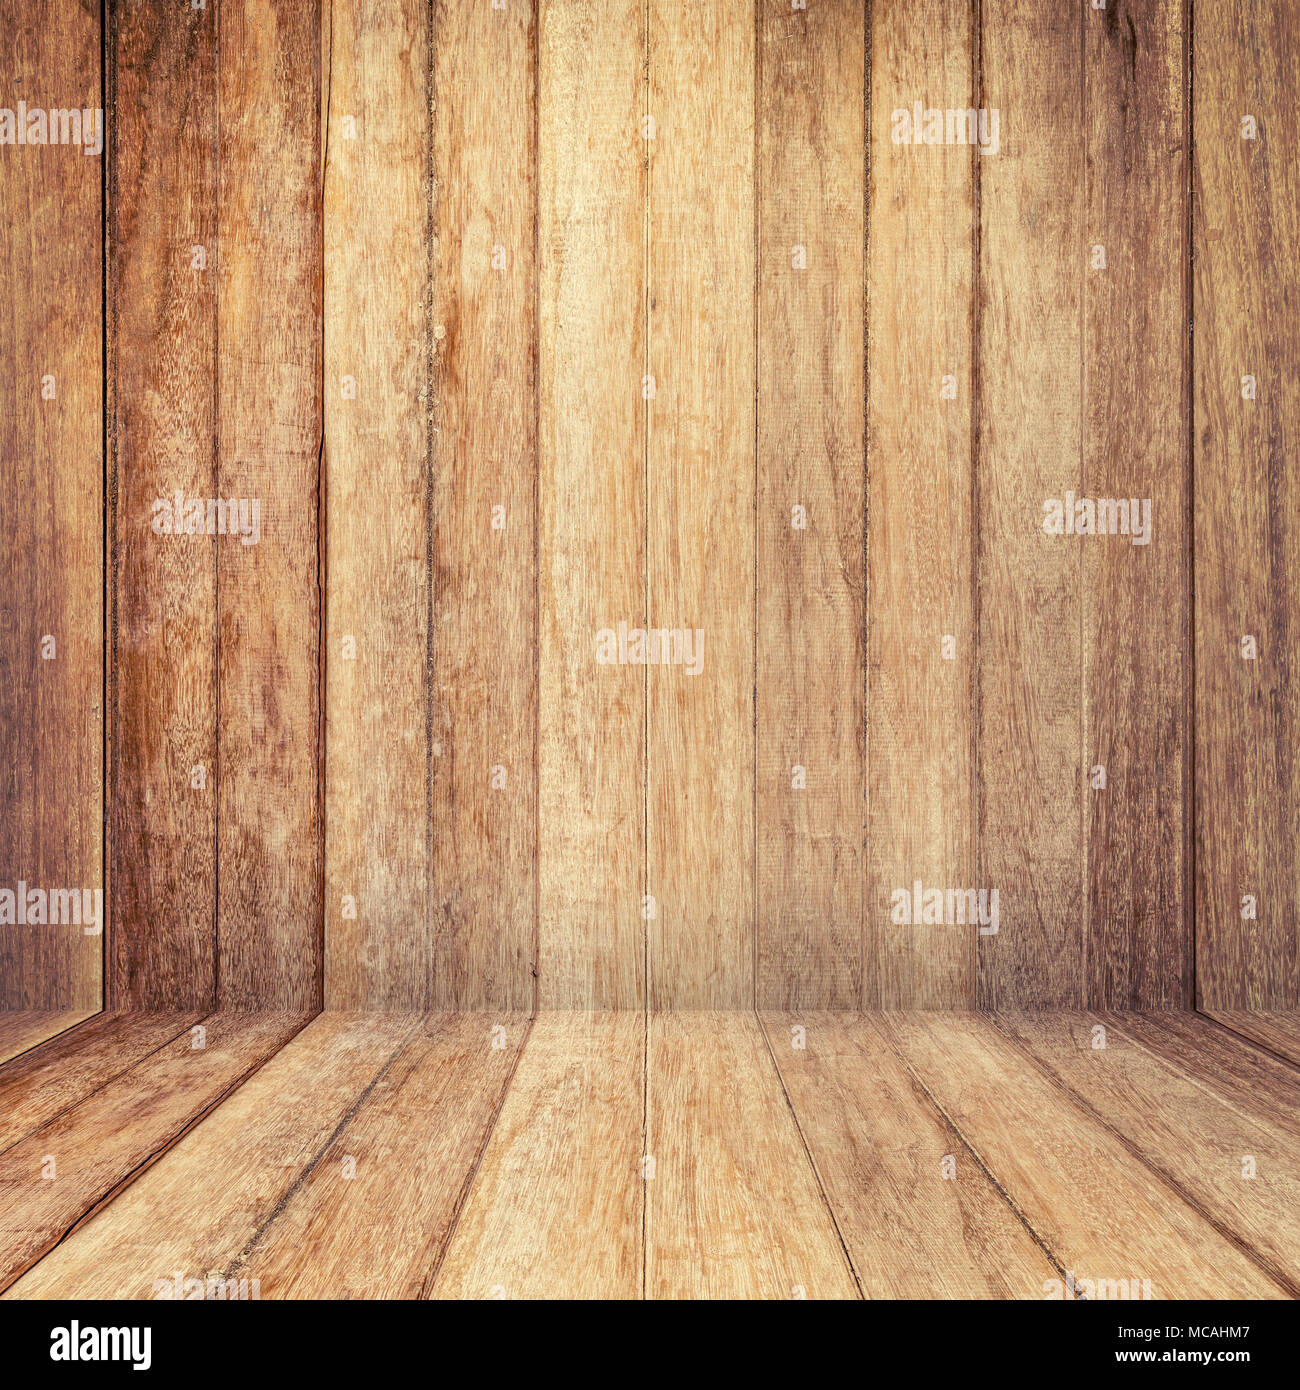 wood floor and wall background. Wood Texture Background. Old Wood Wall And Floor Perspective For Background